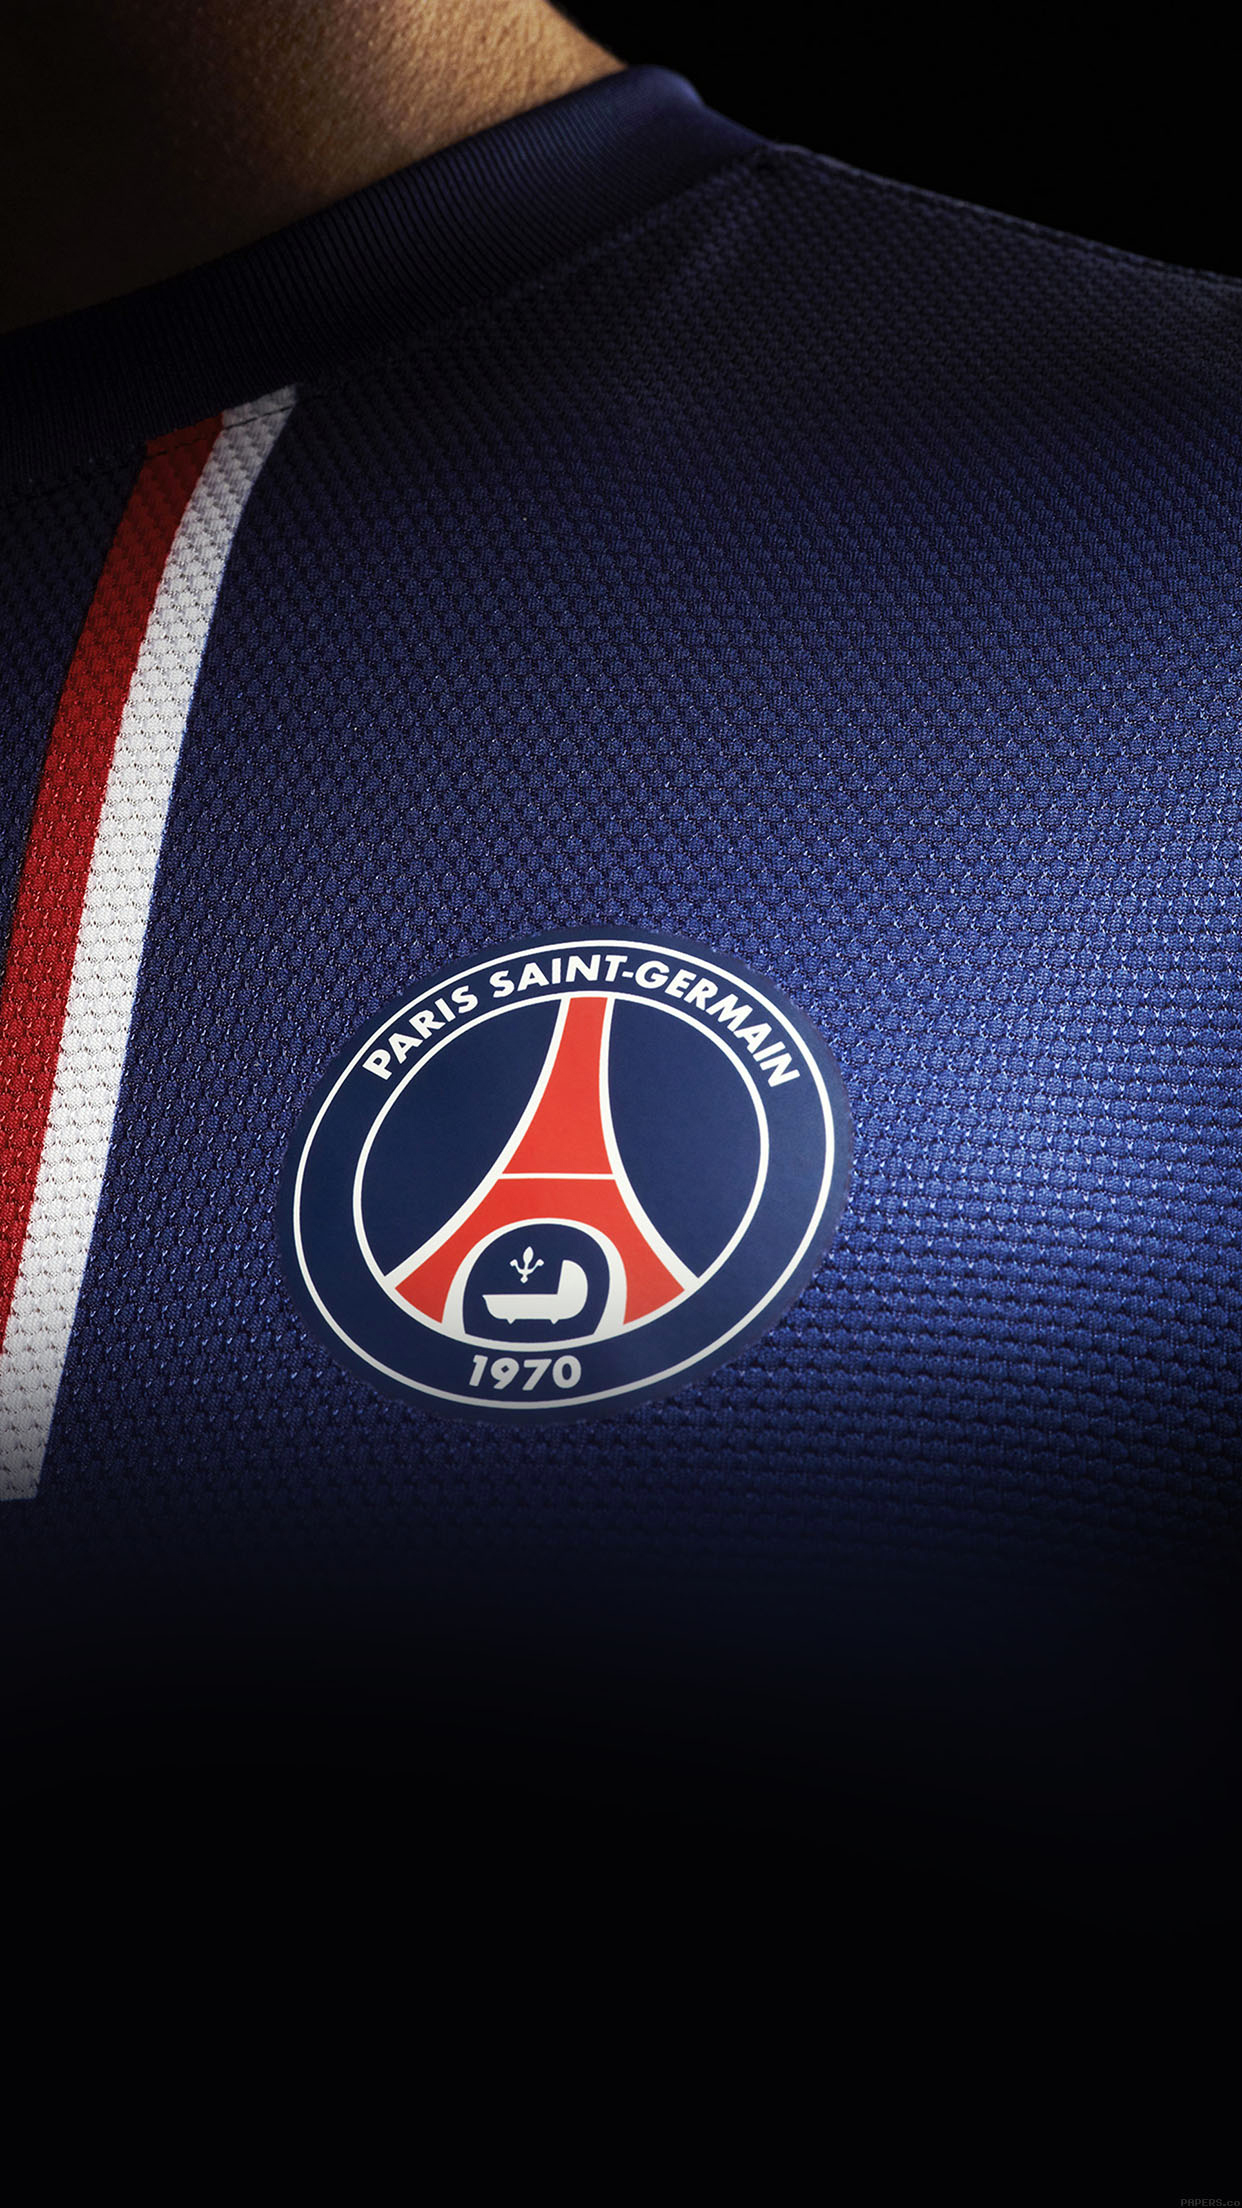 PSG Maillot iPhone 3Wallpapers Parallax Les 3 Wallpapers iPhone du 1242x2208